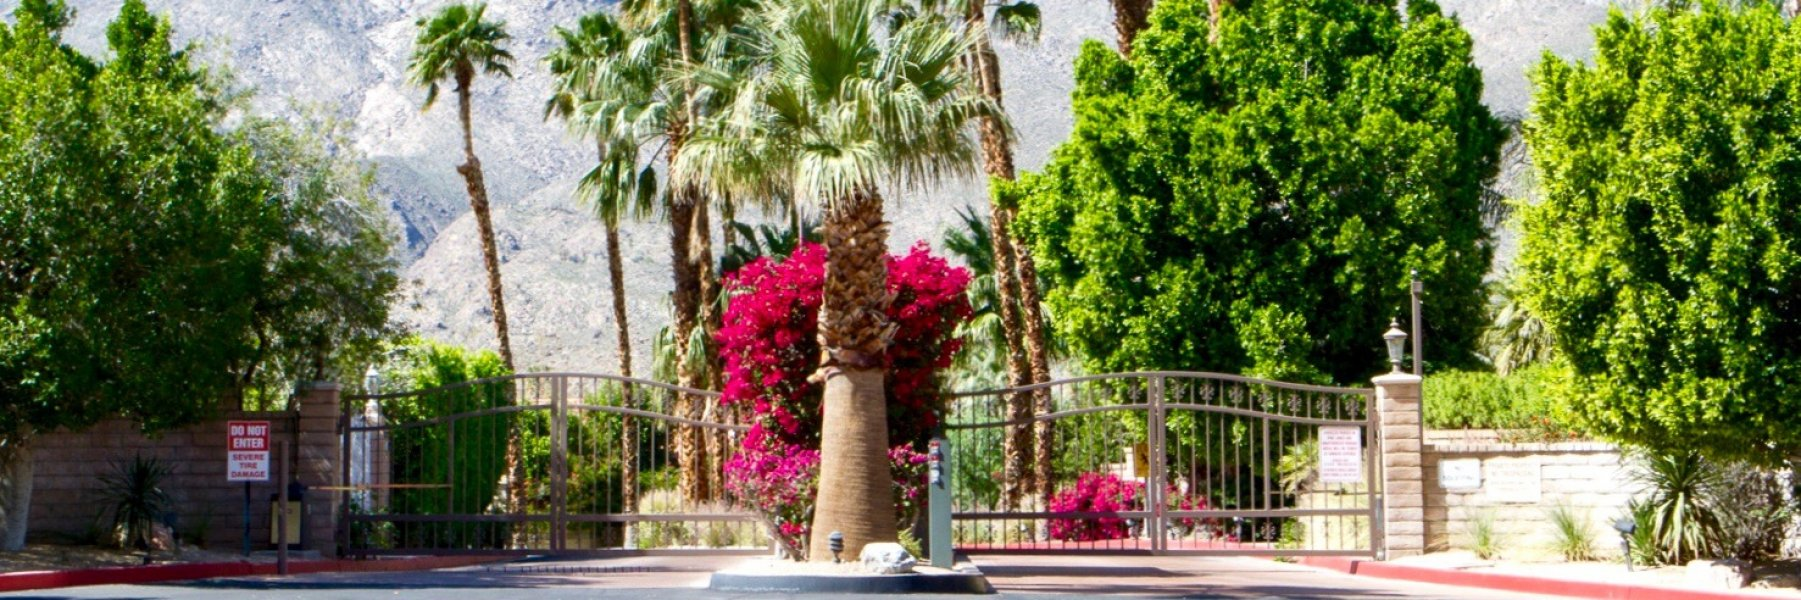 Parc Andreas is a community of homes in Palm Springs California